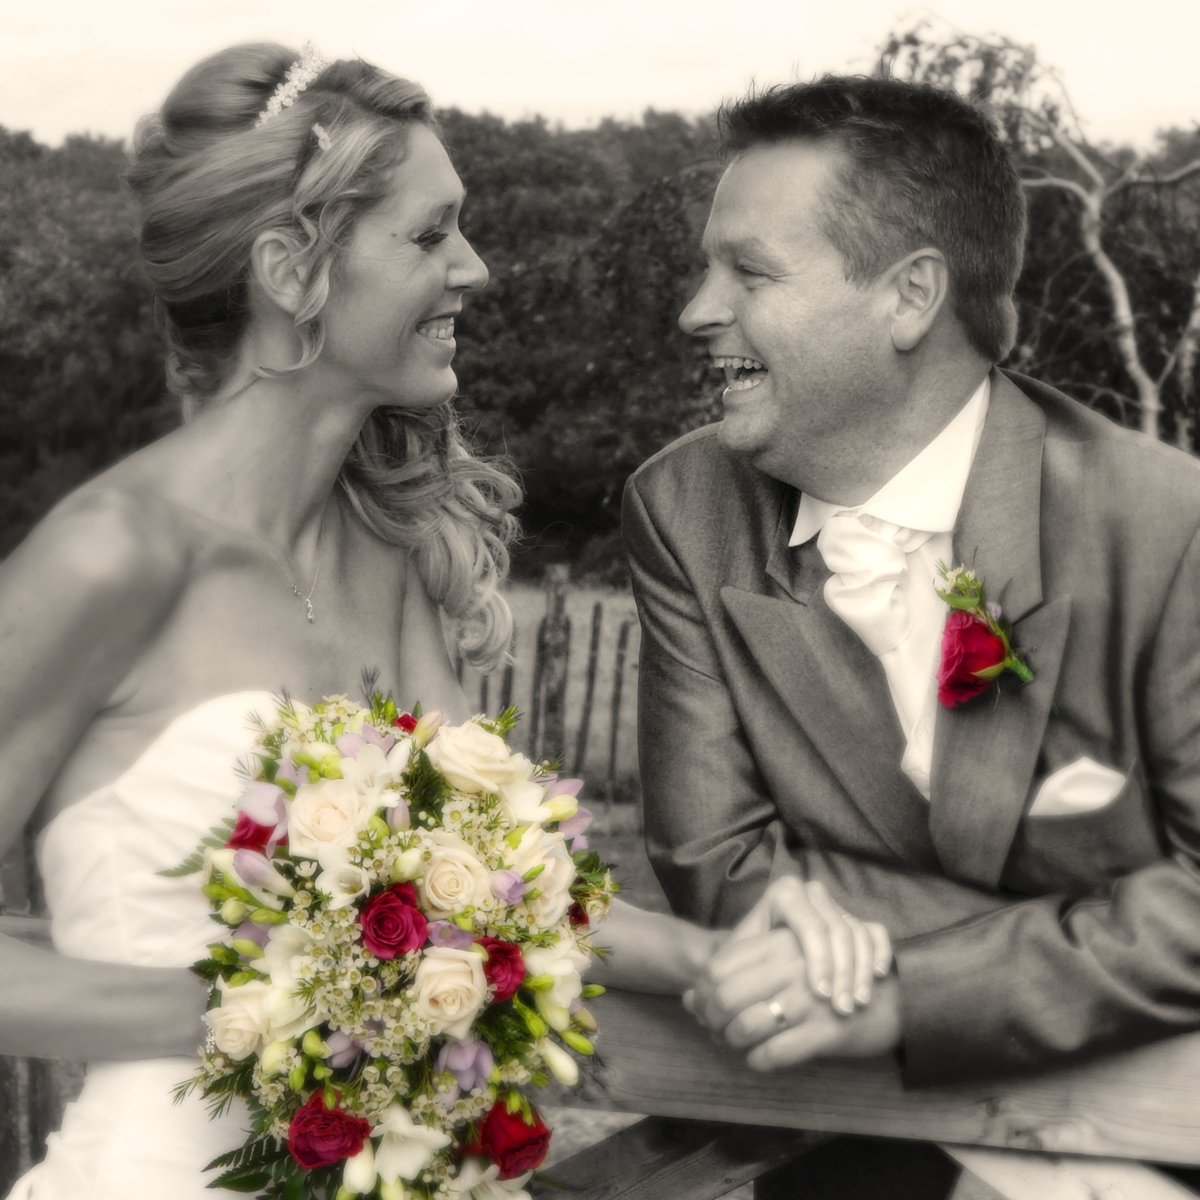 Your special day filled with beautiful memories. Wedding photography by Andy Huntley at ah! Surrey, Sussex and London